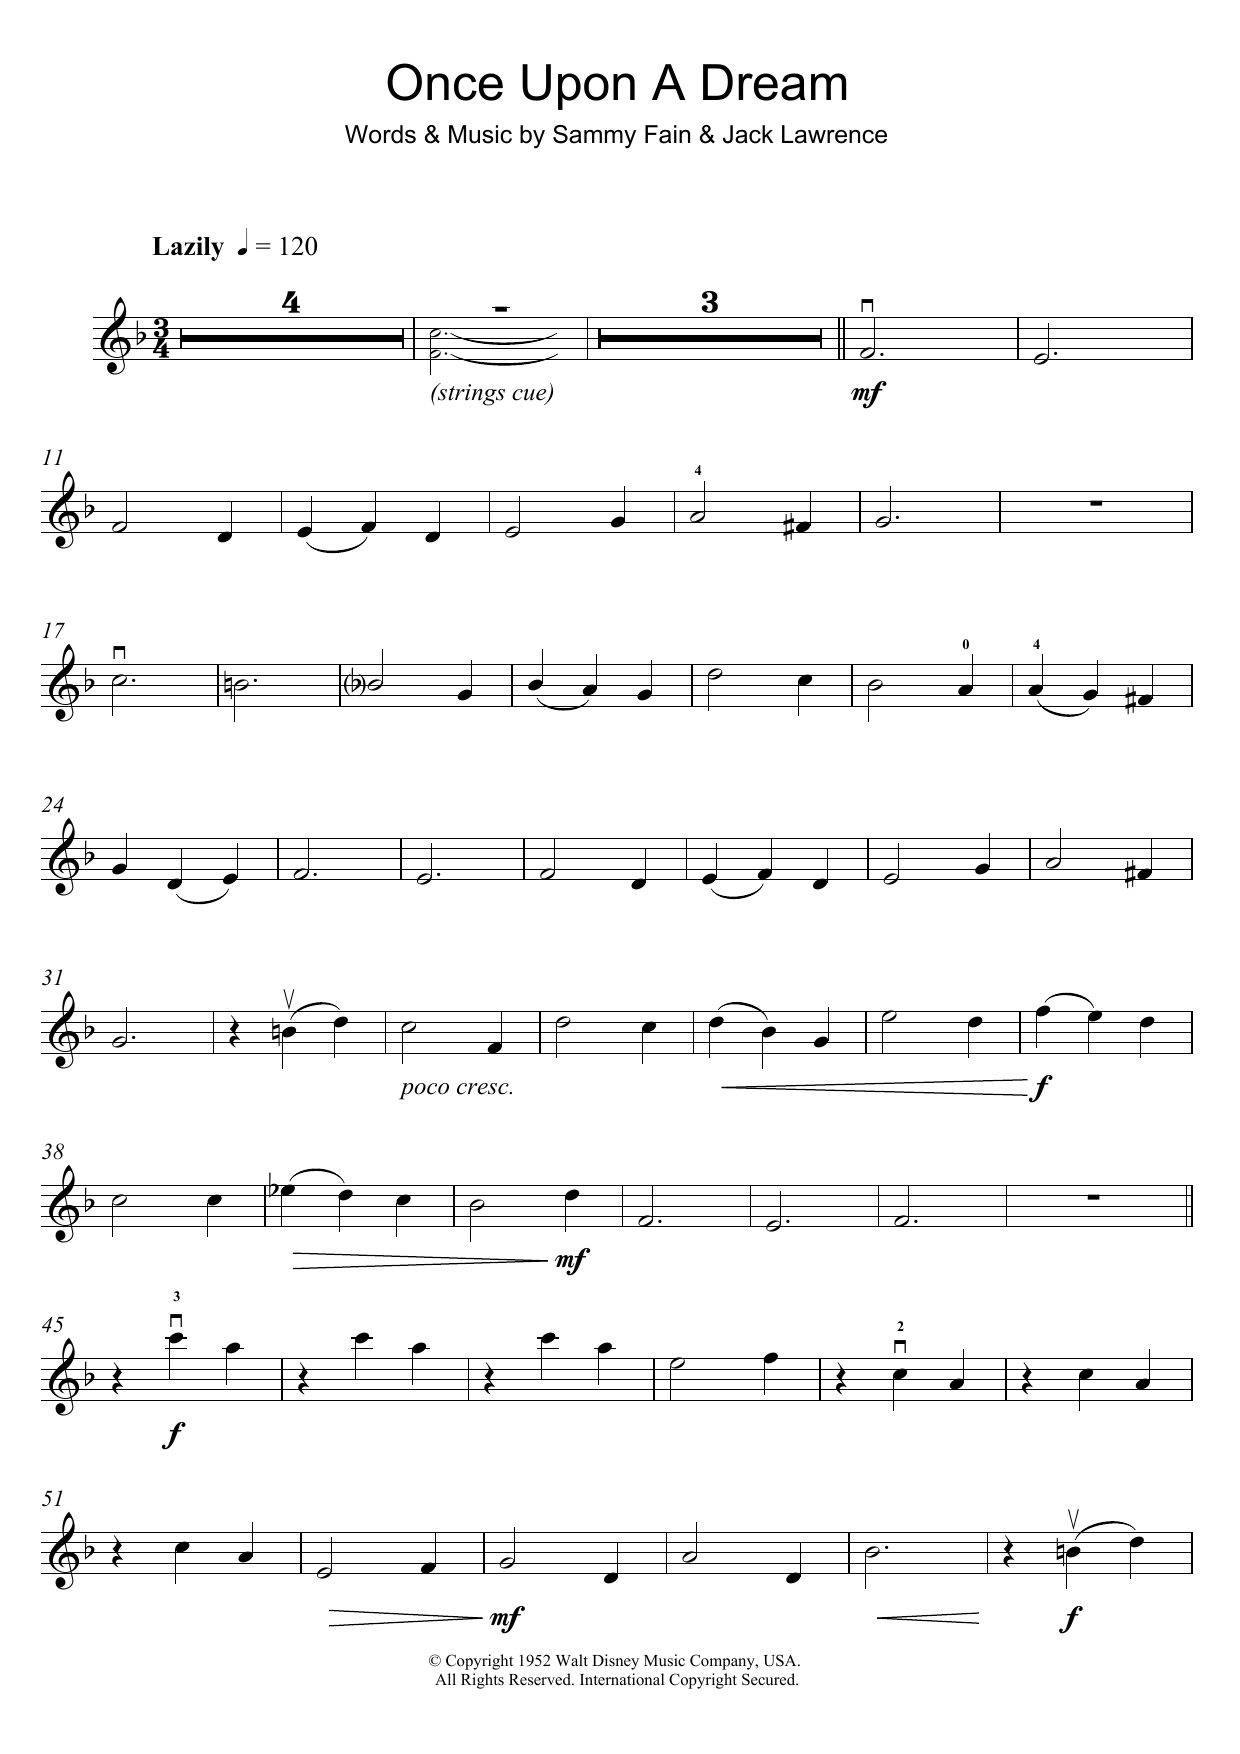 Sheet music digital files to print licensed jack lawrence sheet music digital files to print licensed jack lawrence digital sheet music hexwebz Image collections